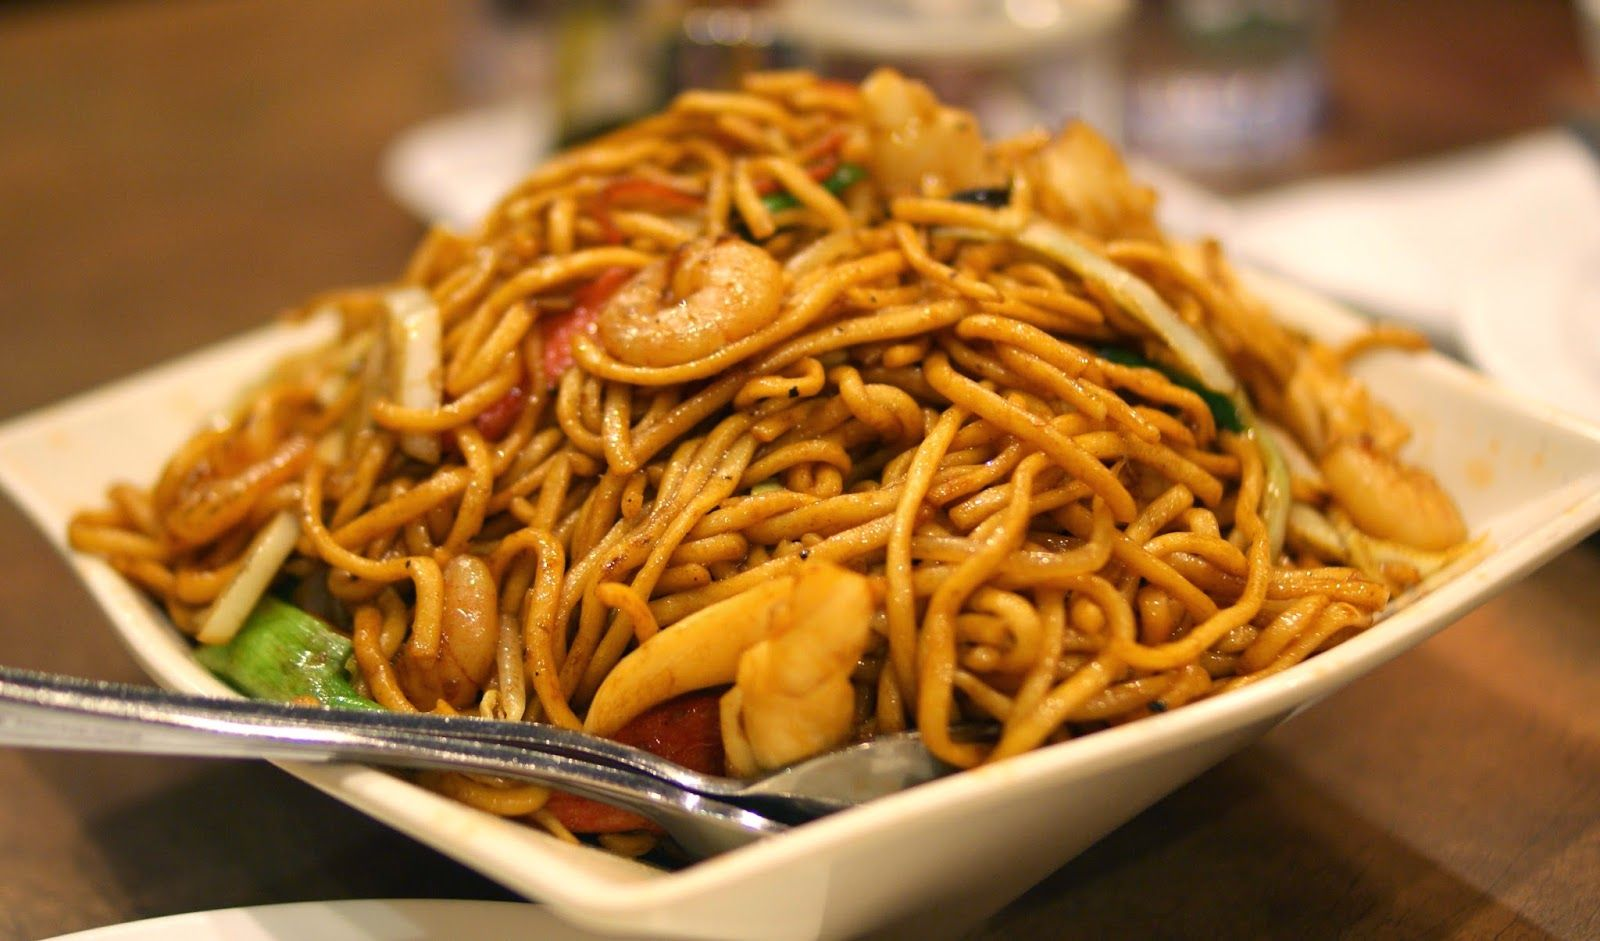 Chinese Food Menu Recipes Take Out Near Meme Noodles Images Clipart Image 26047 Chinese Food Menu Food Chinese Dishes